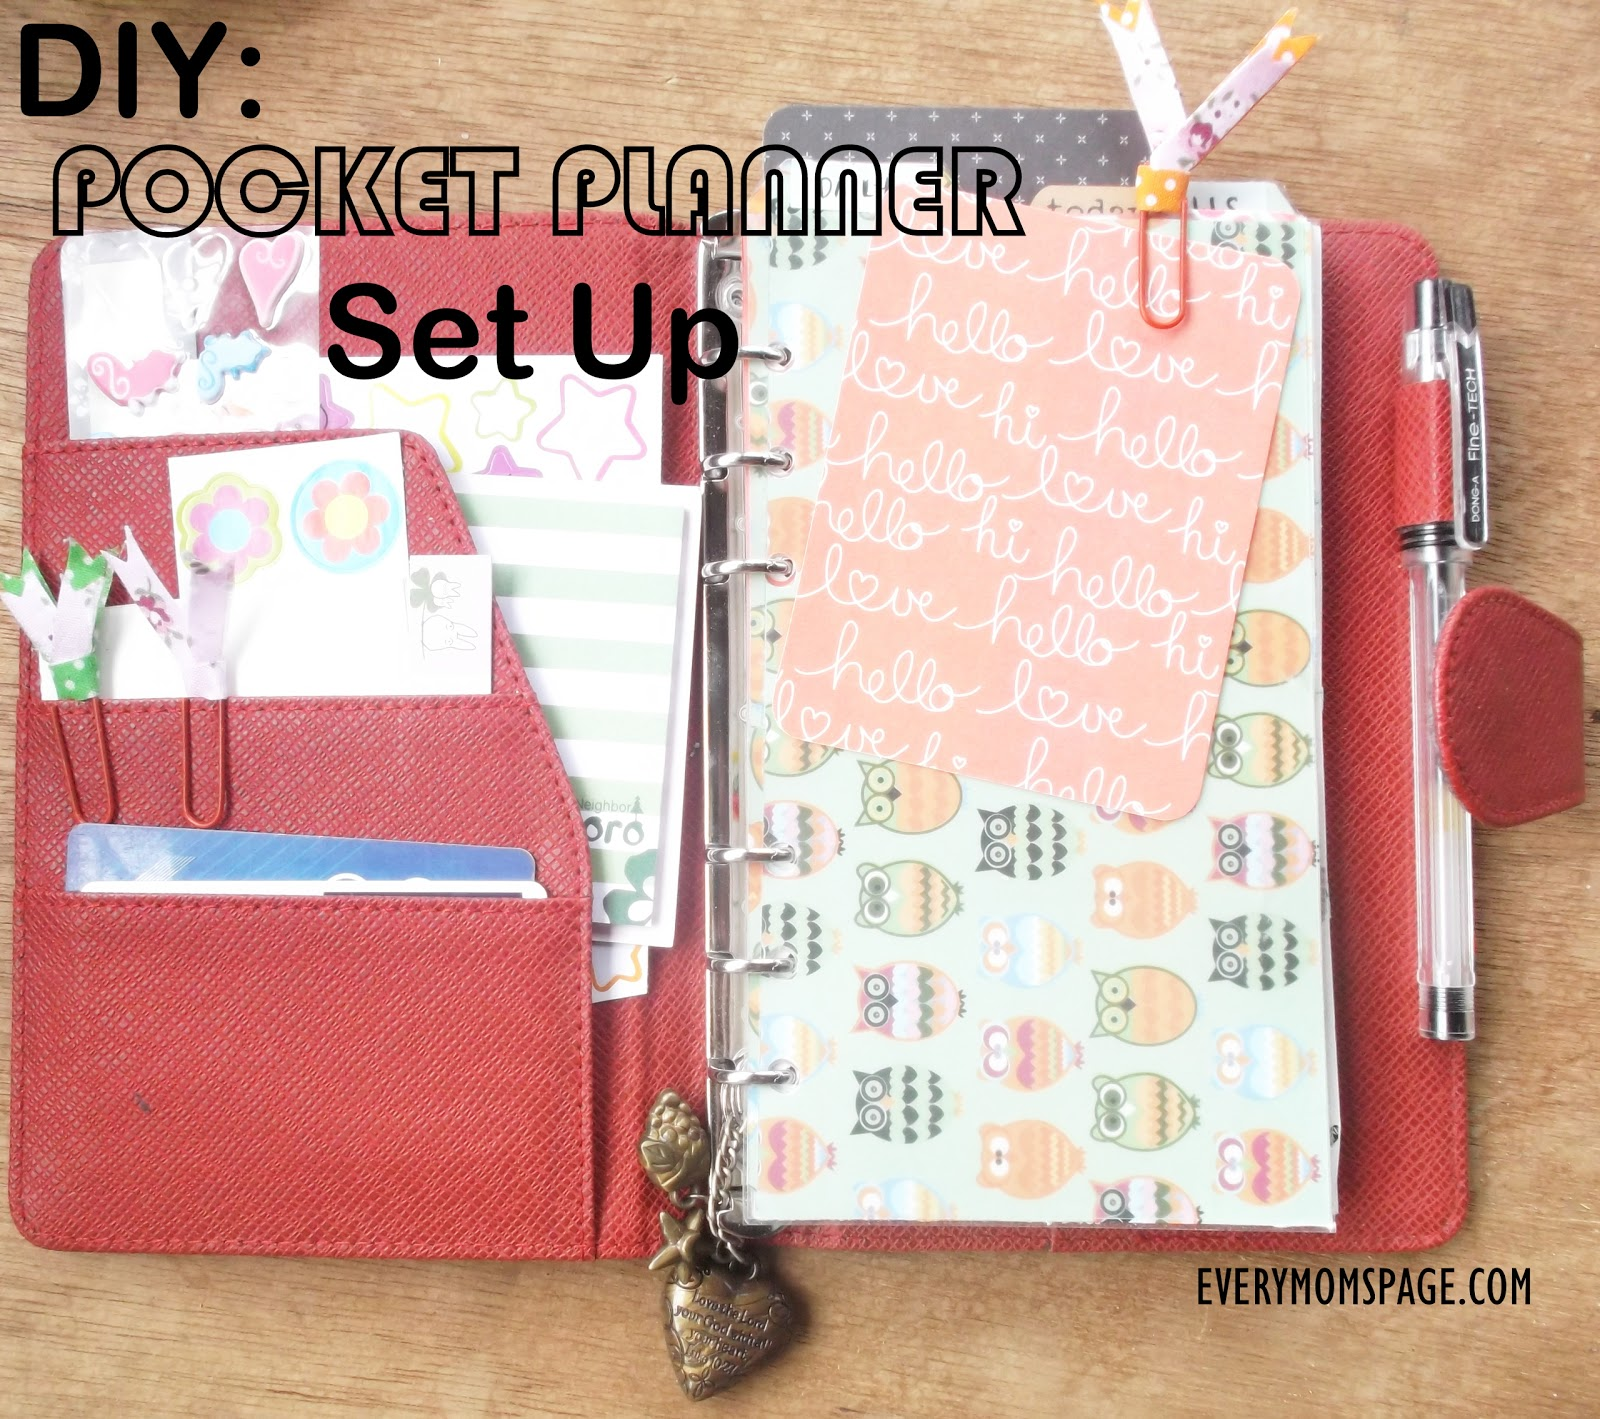 My Pocket Planner Make-Over and Set-Up